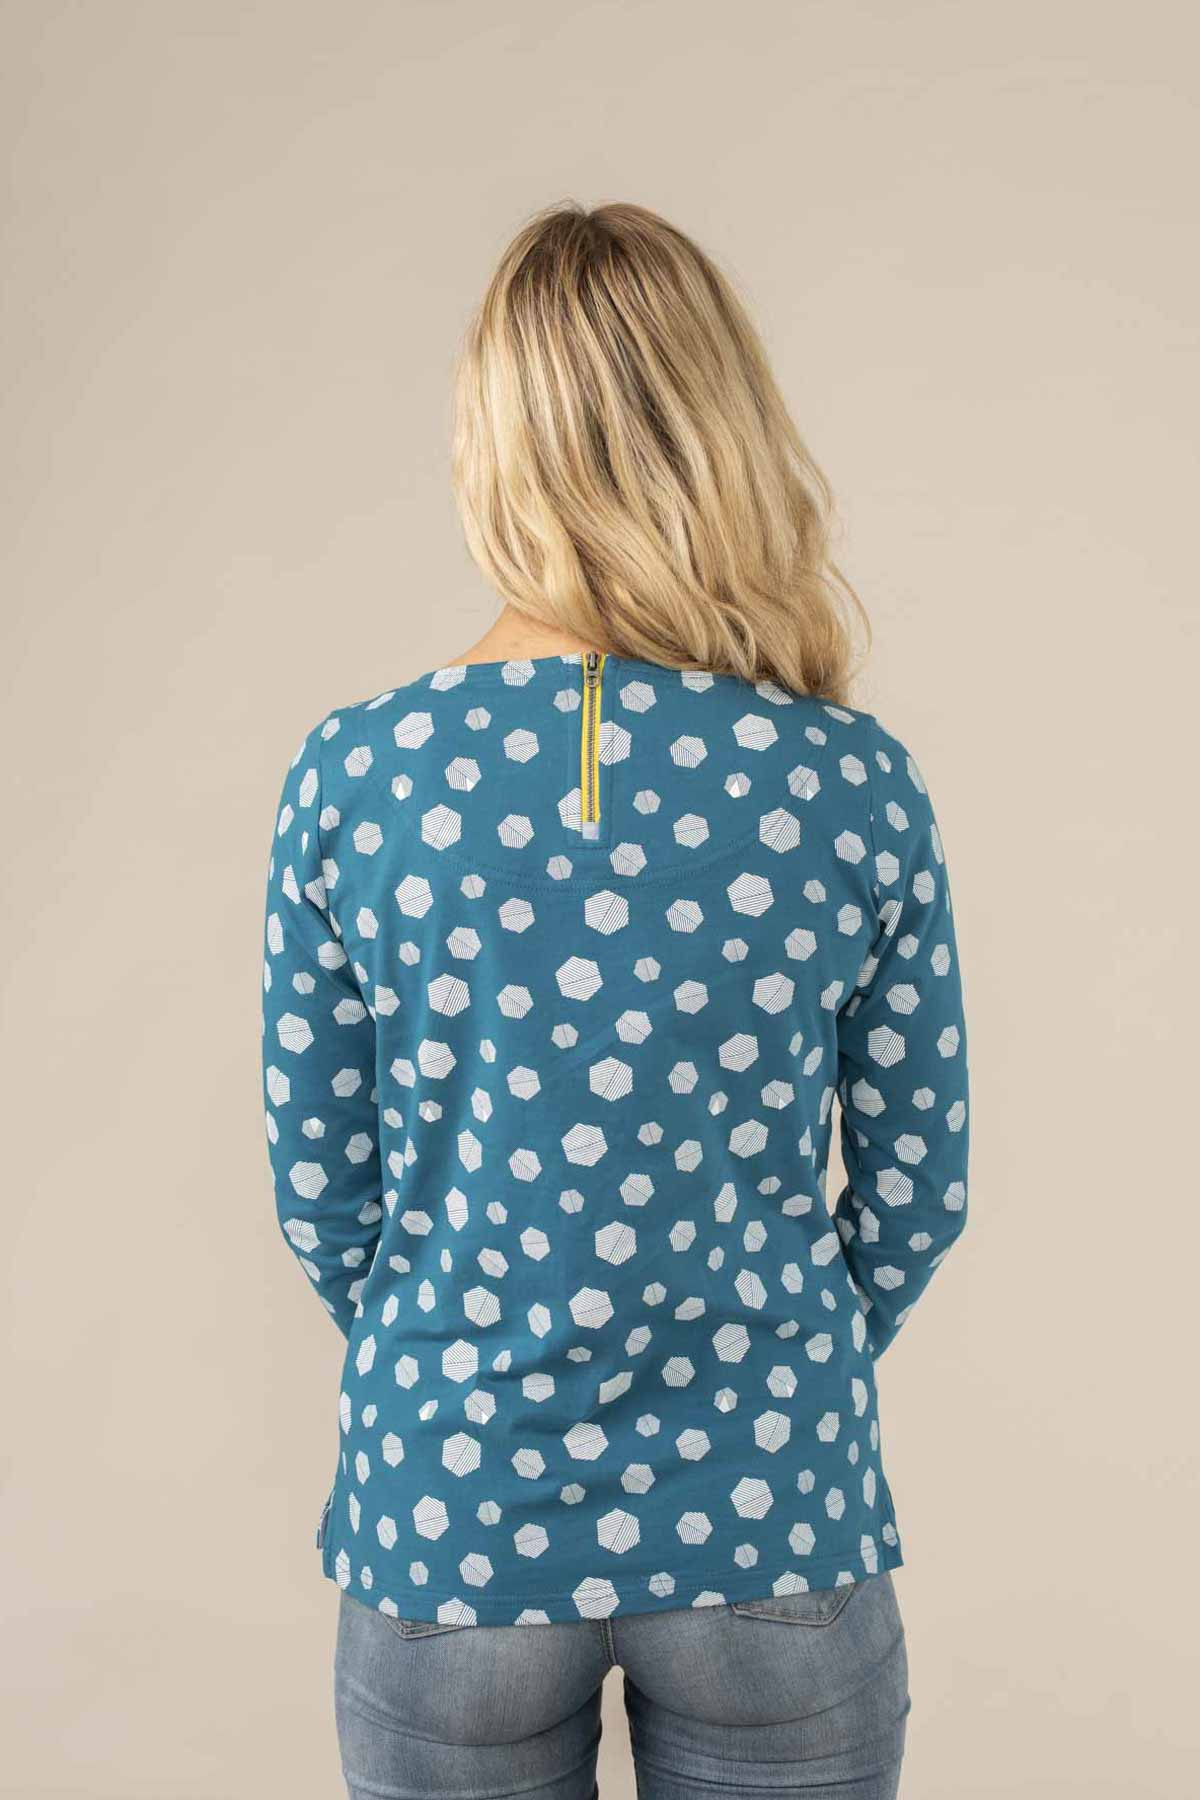 Causeway Breton Top. Long Sleeve Cotton Print | Lighthouse